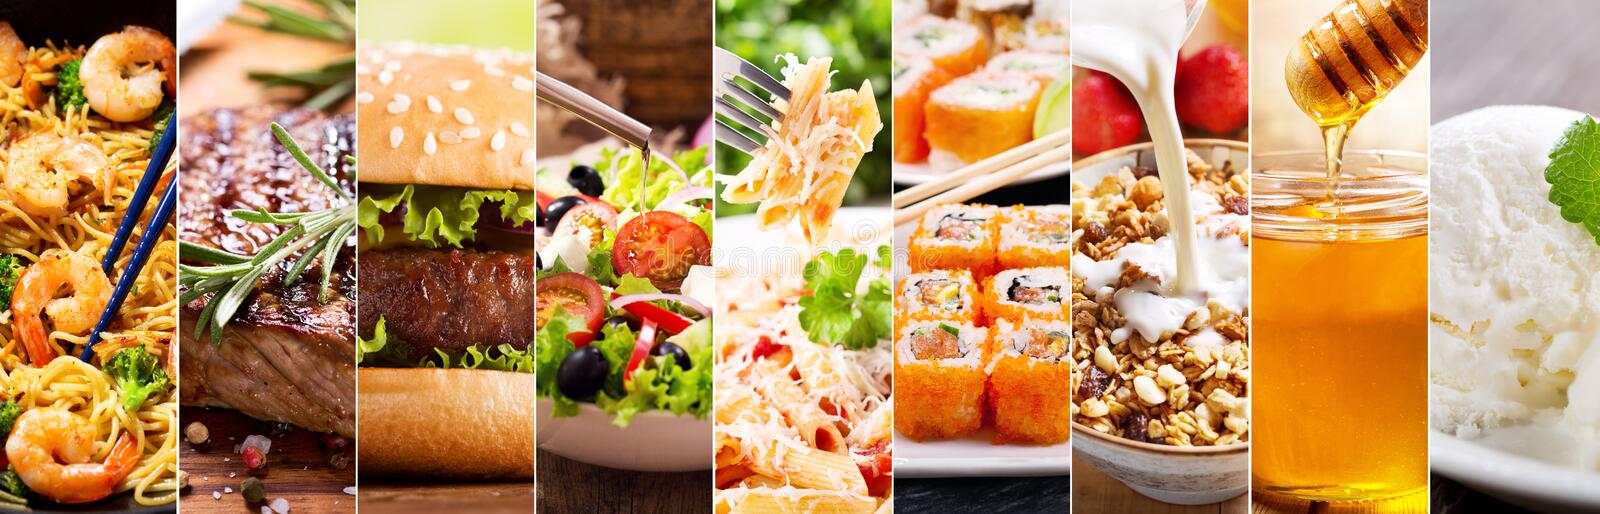 Collage of food products royalty free stock image